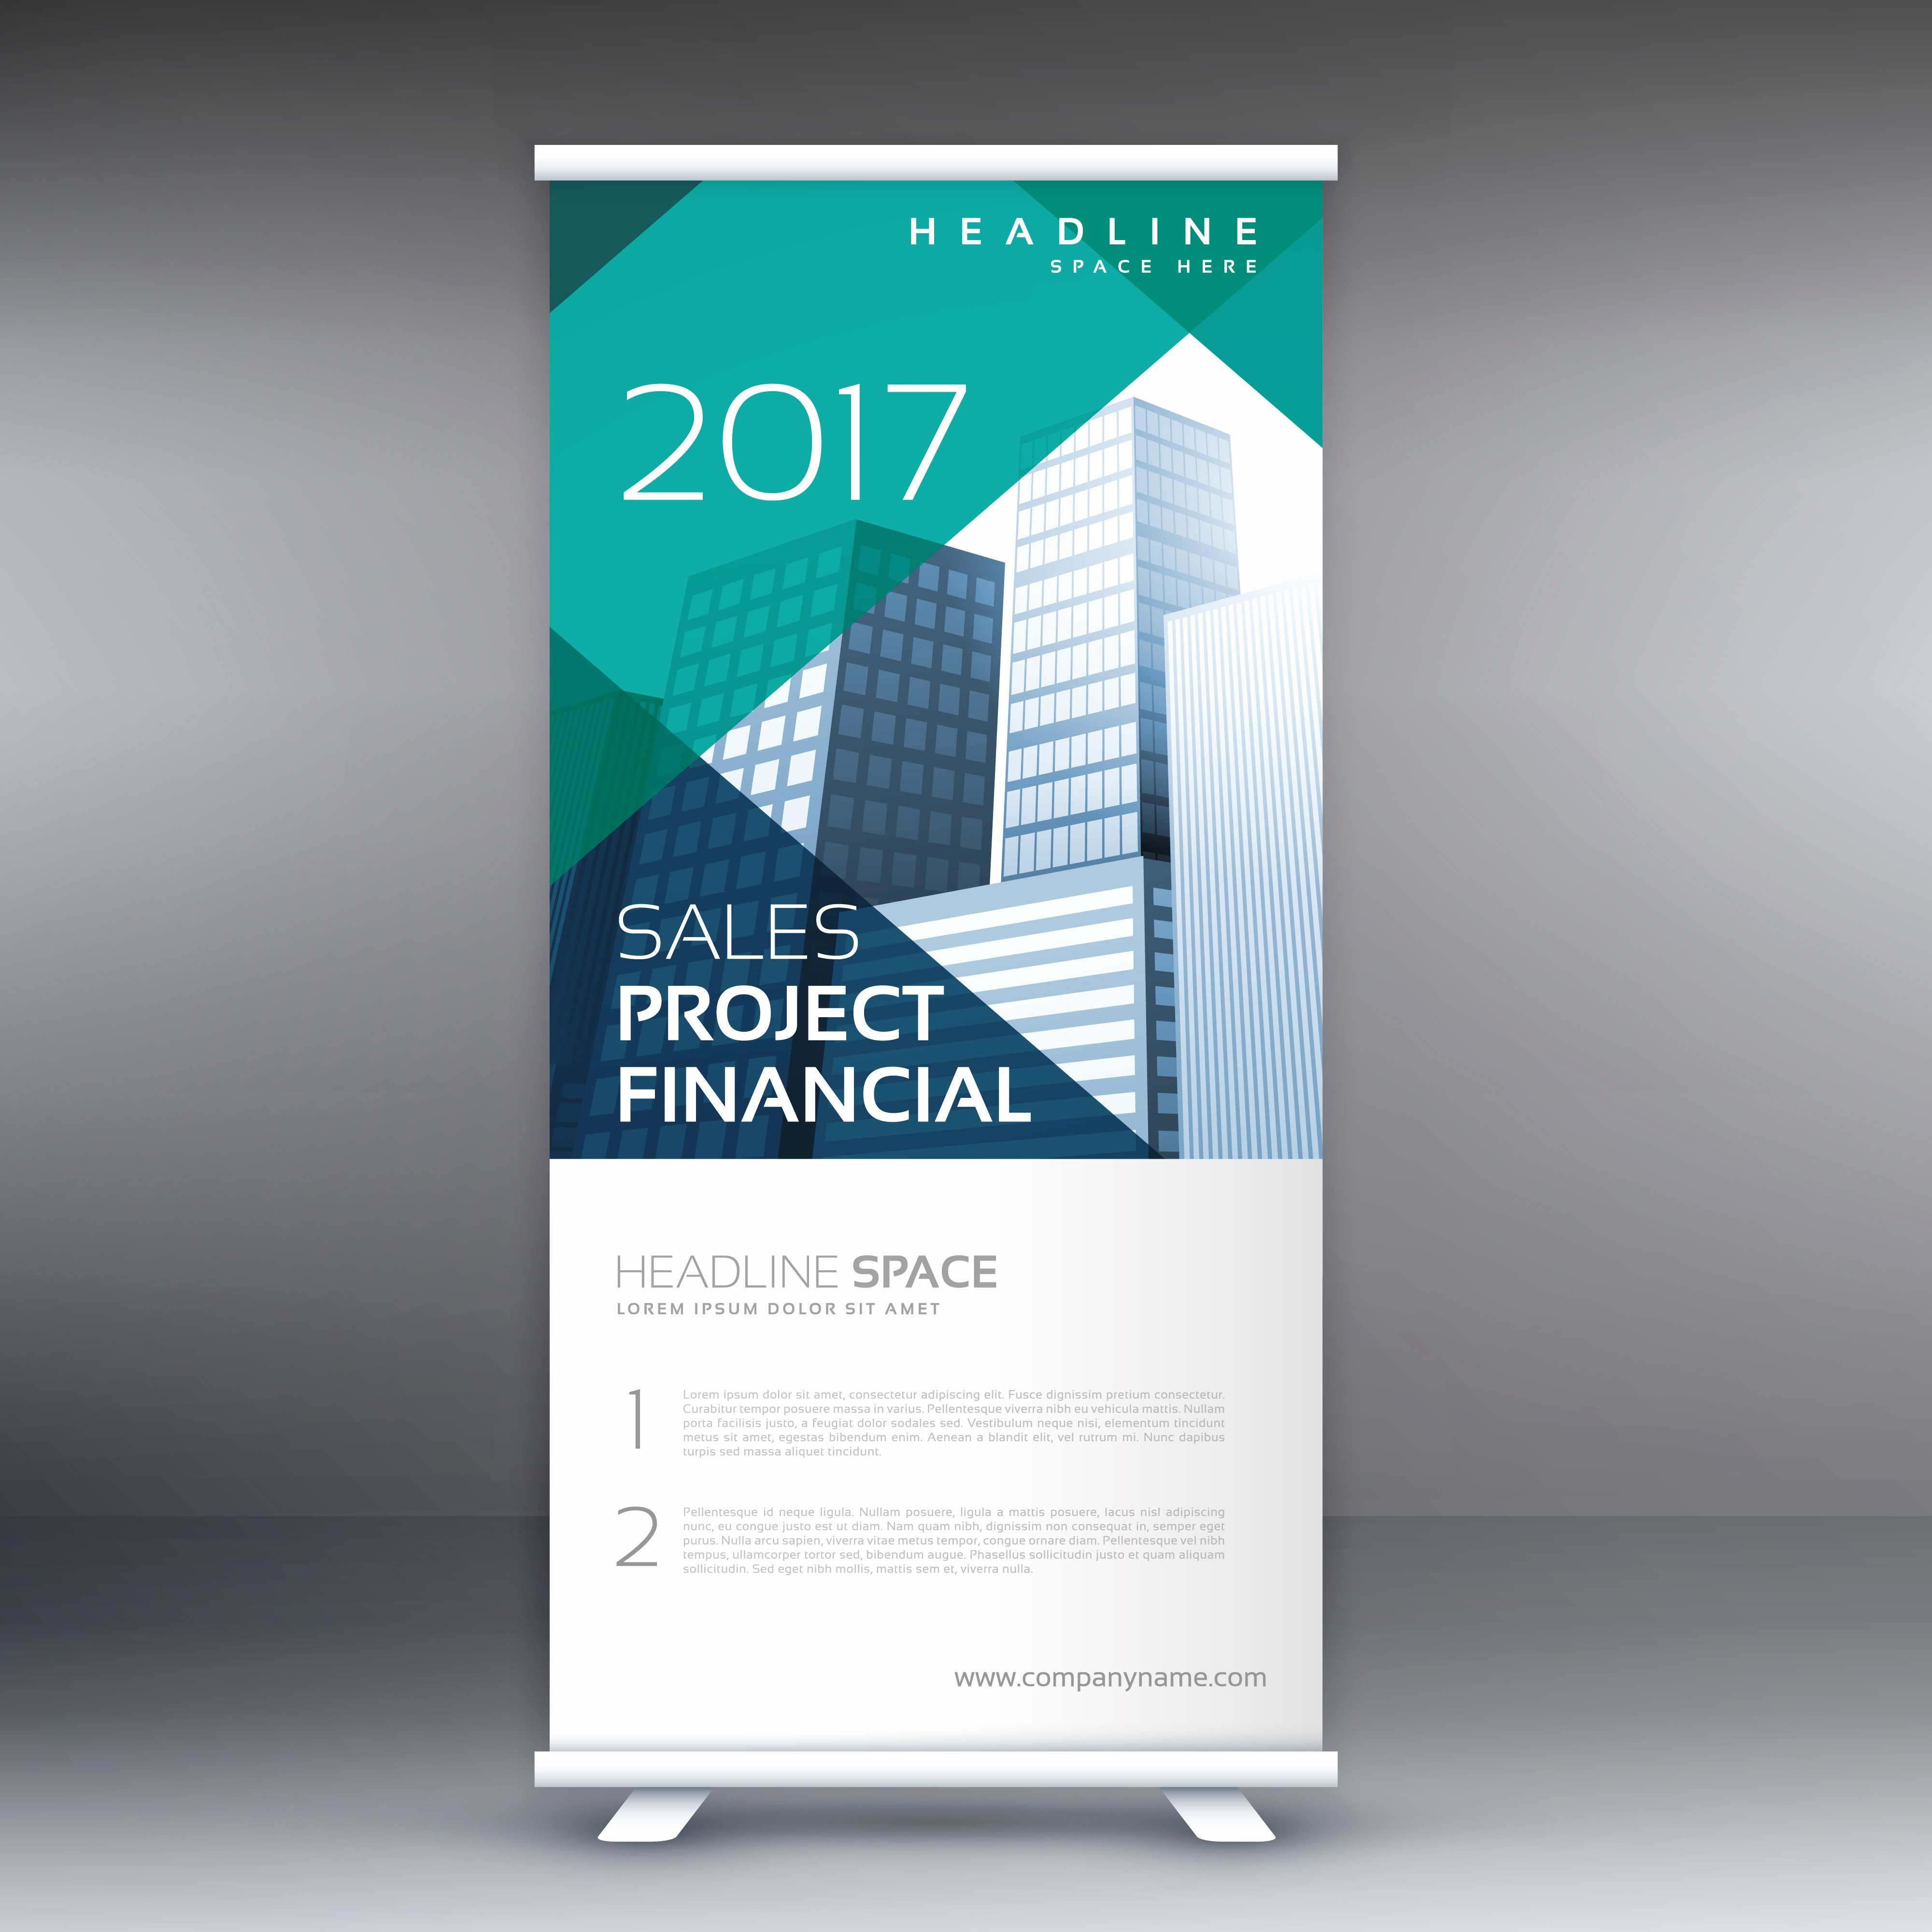 Roll Up Banners Template Inspirational Geometric Roll Up Banner Template Download Free Vector